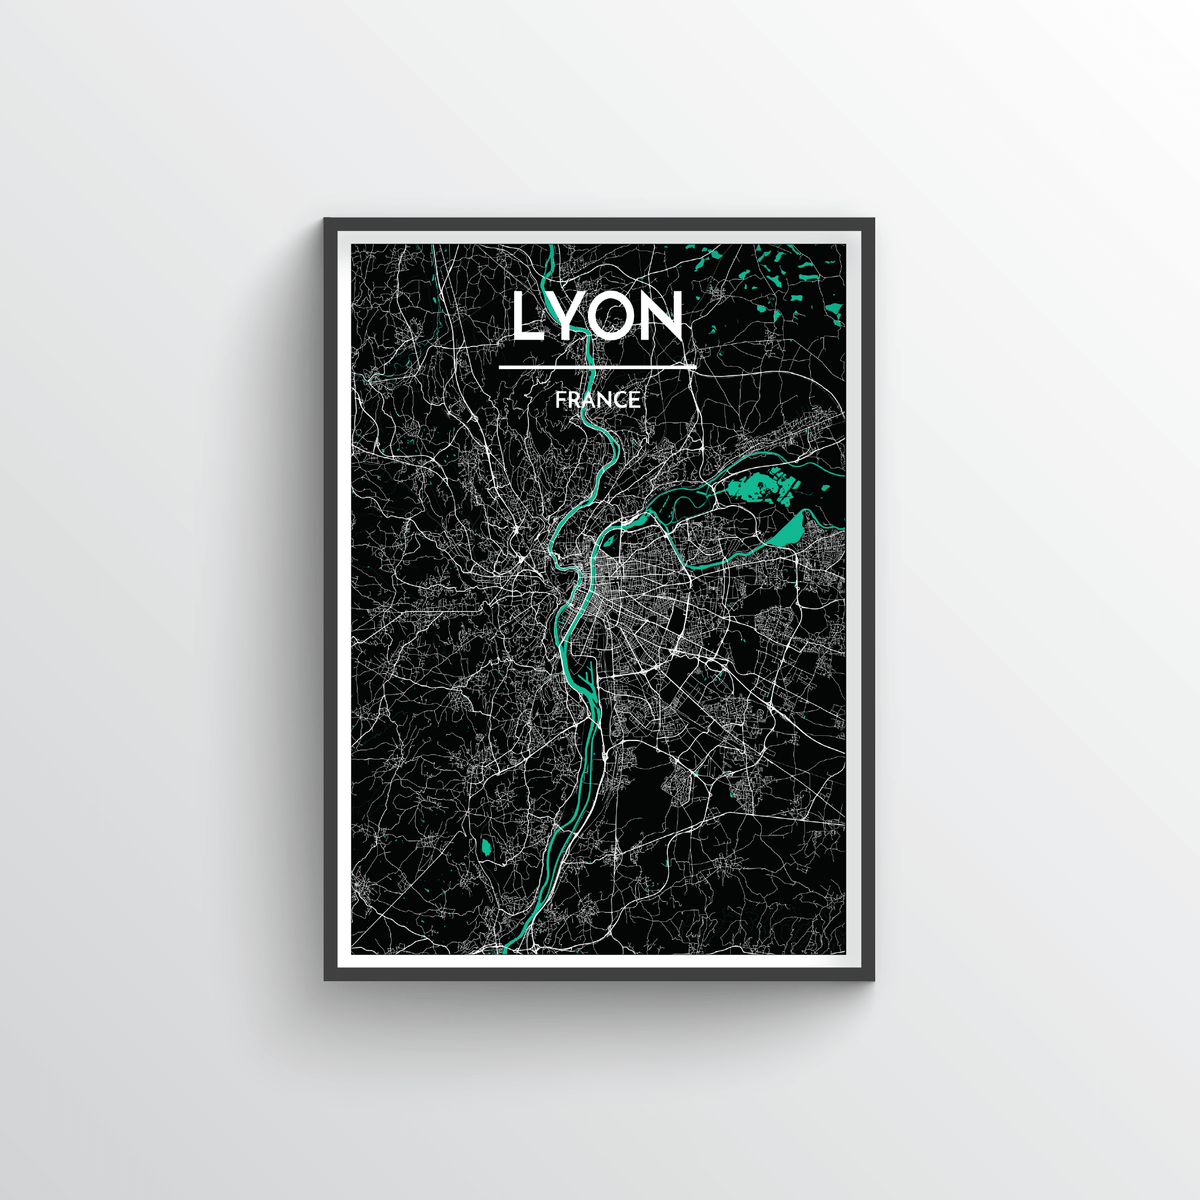 Lyon City Map Art Print - Point Two Design - Black & White Print